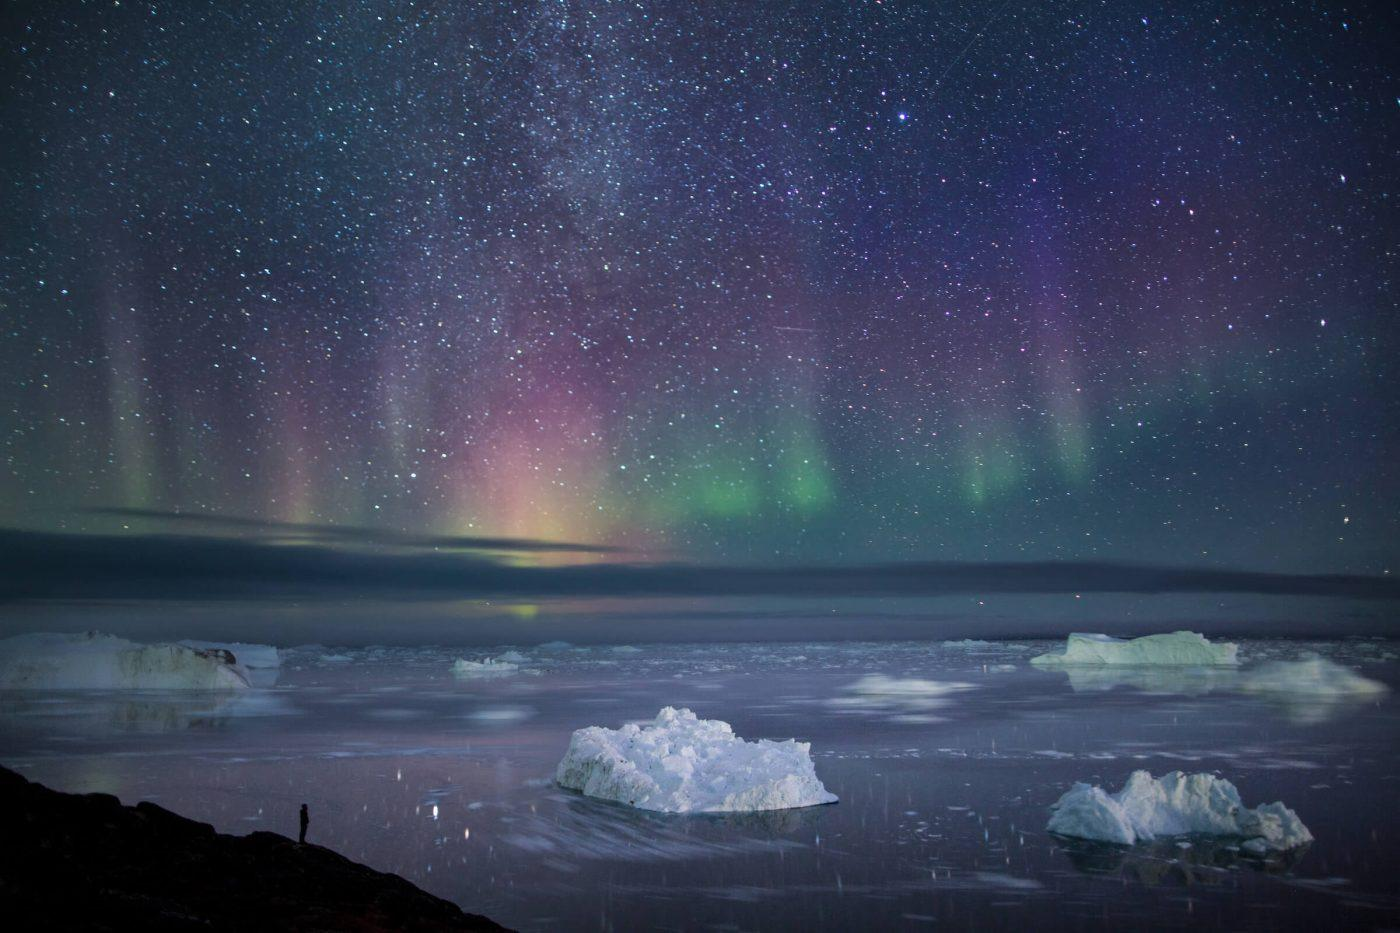 Hiker in Ilulissat, North Greenland standing at the Sermermiut overlook close to the Ilulissat Icefjord gazing at icebergs and a crisp autumn night sky filled with stars and northern lights. By Paul Zizka. Visit Greenland